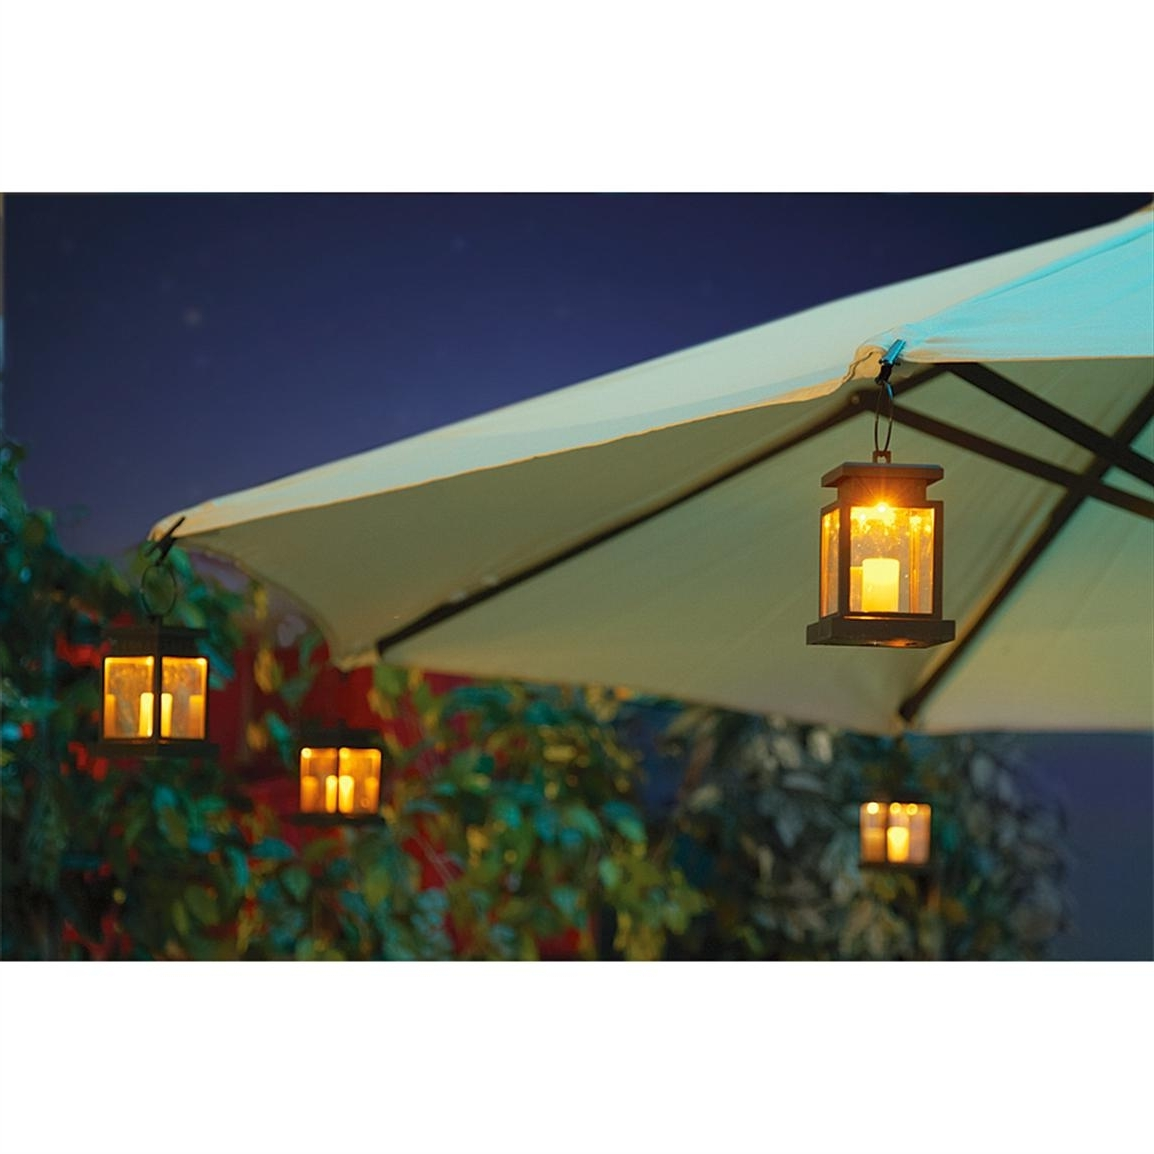 Patio Umbrellas With Solar Led Lights Within Most Up To Date Outdoor Light : Extraordinary Patio Umbrella Lights Battery Operated (View 12 of 20)